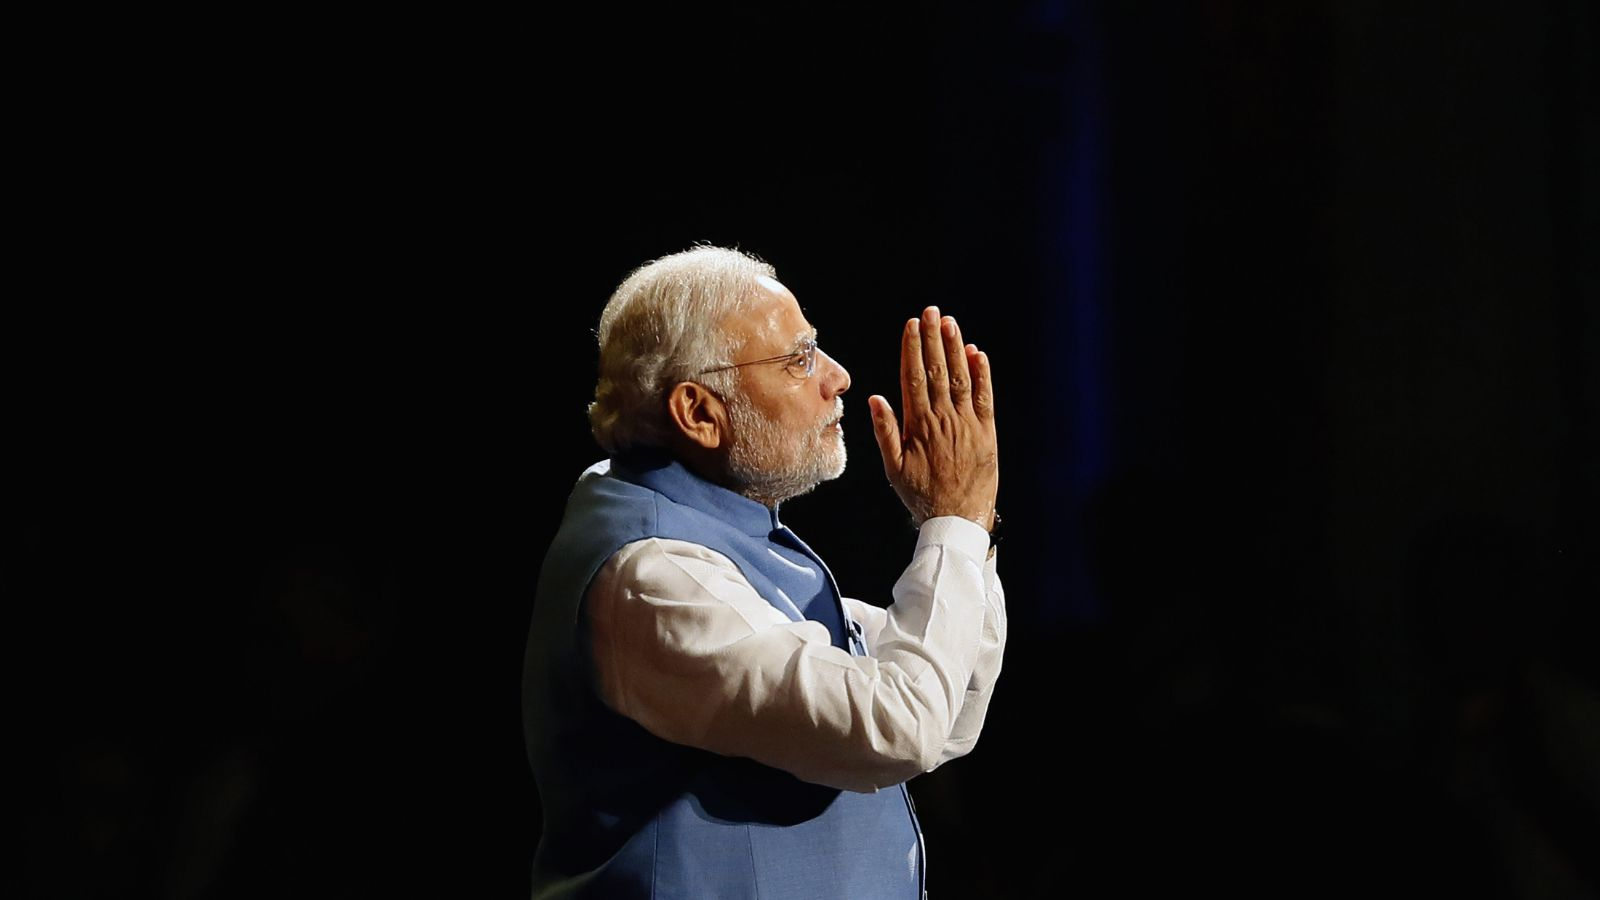 India's Prime Minister Narendra Modi reacts as he speaks to members of the Australian-Indian community during a reception at the Allphones Arena located at Sydney Olympic Park in western Sydney November 17, 2014. Modi is on a three-day offcial visit to Australia following the G20 leaders summit which was held in Brisbane over the weekend. REUTERS/Rick Stevens